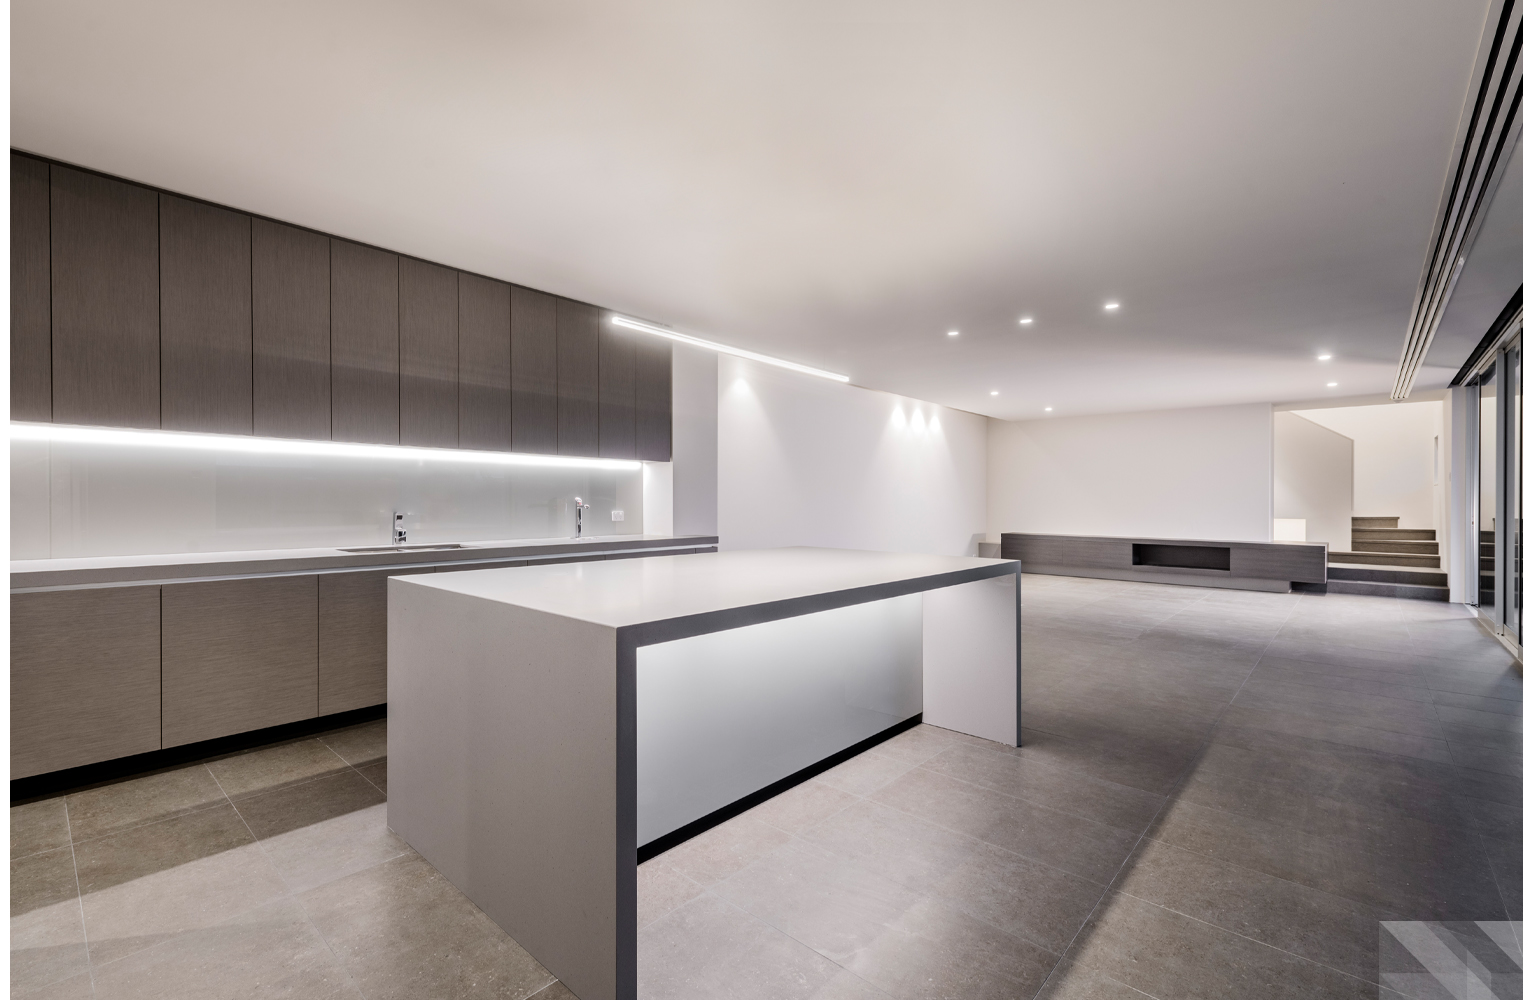 maek-luxury-home-design-inspiration-jolimont-kitchen-7.jpg